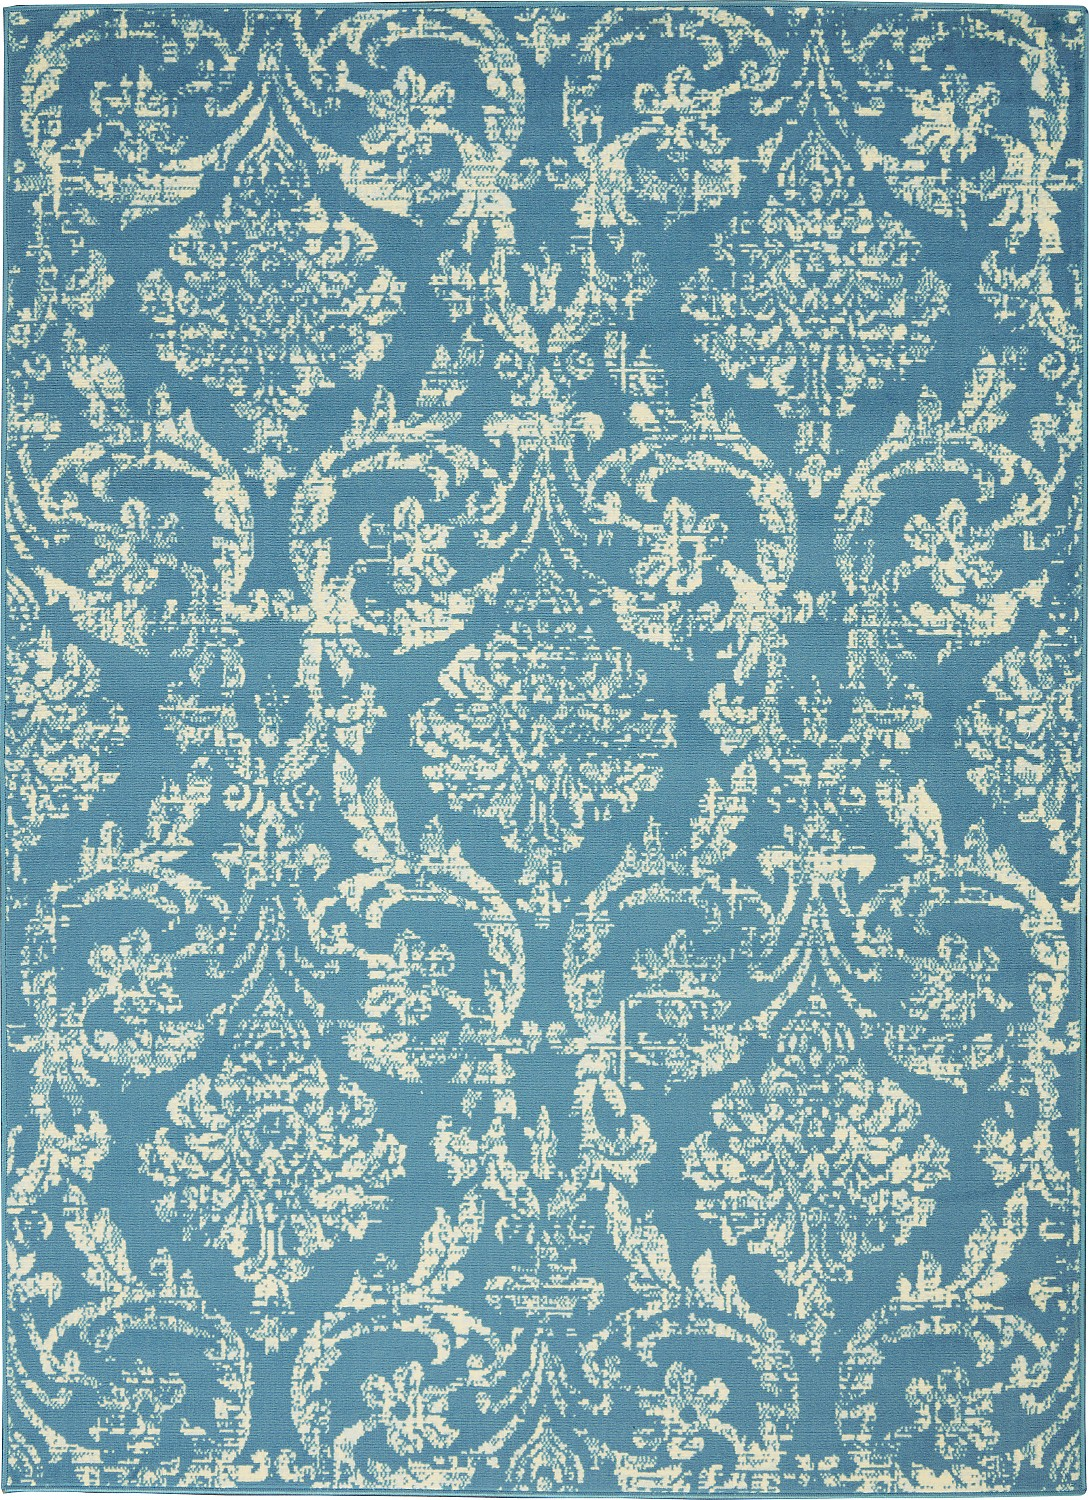 jubilant jub09 blue area rug farmhouse vintage